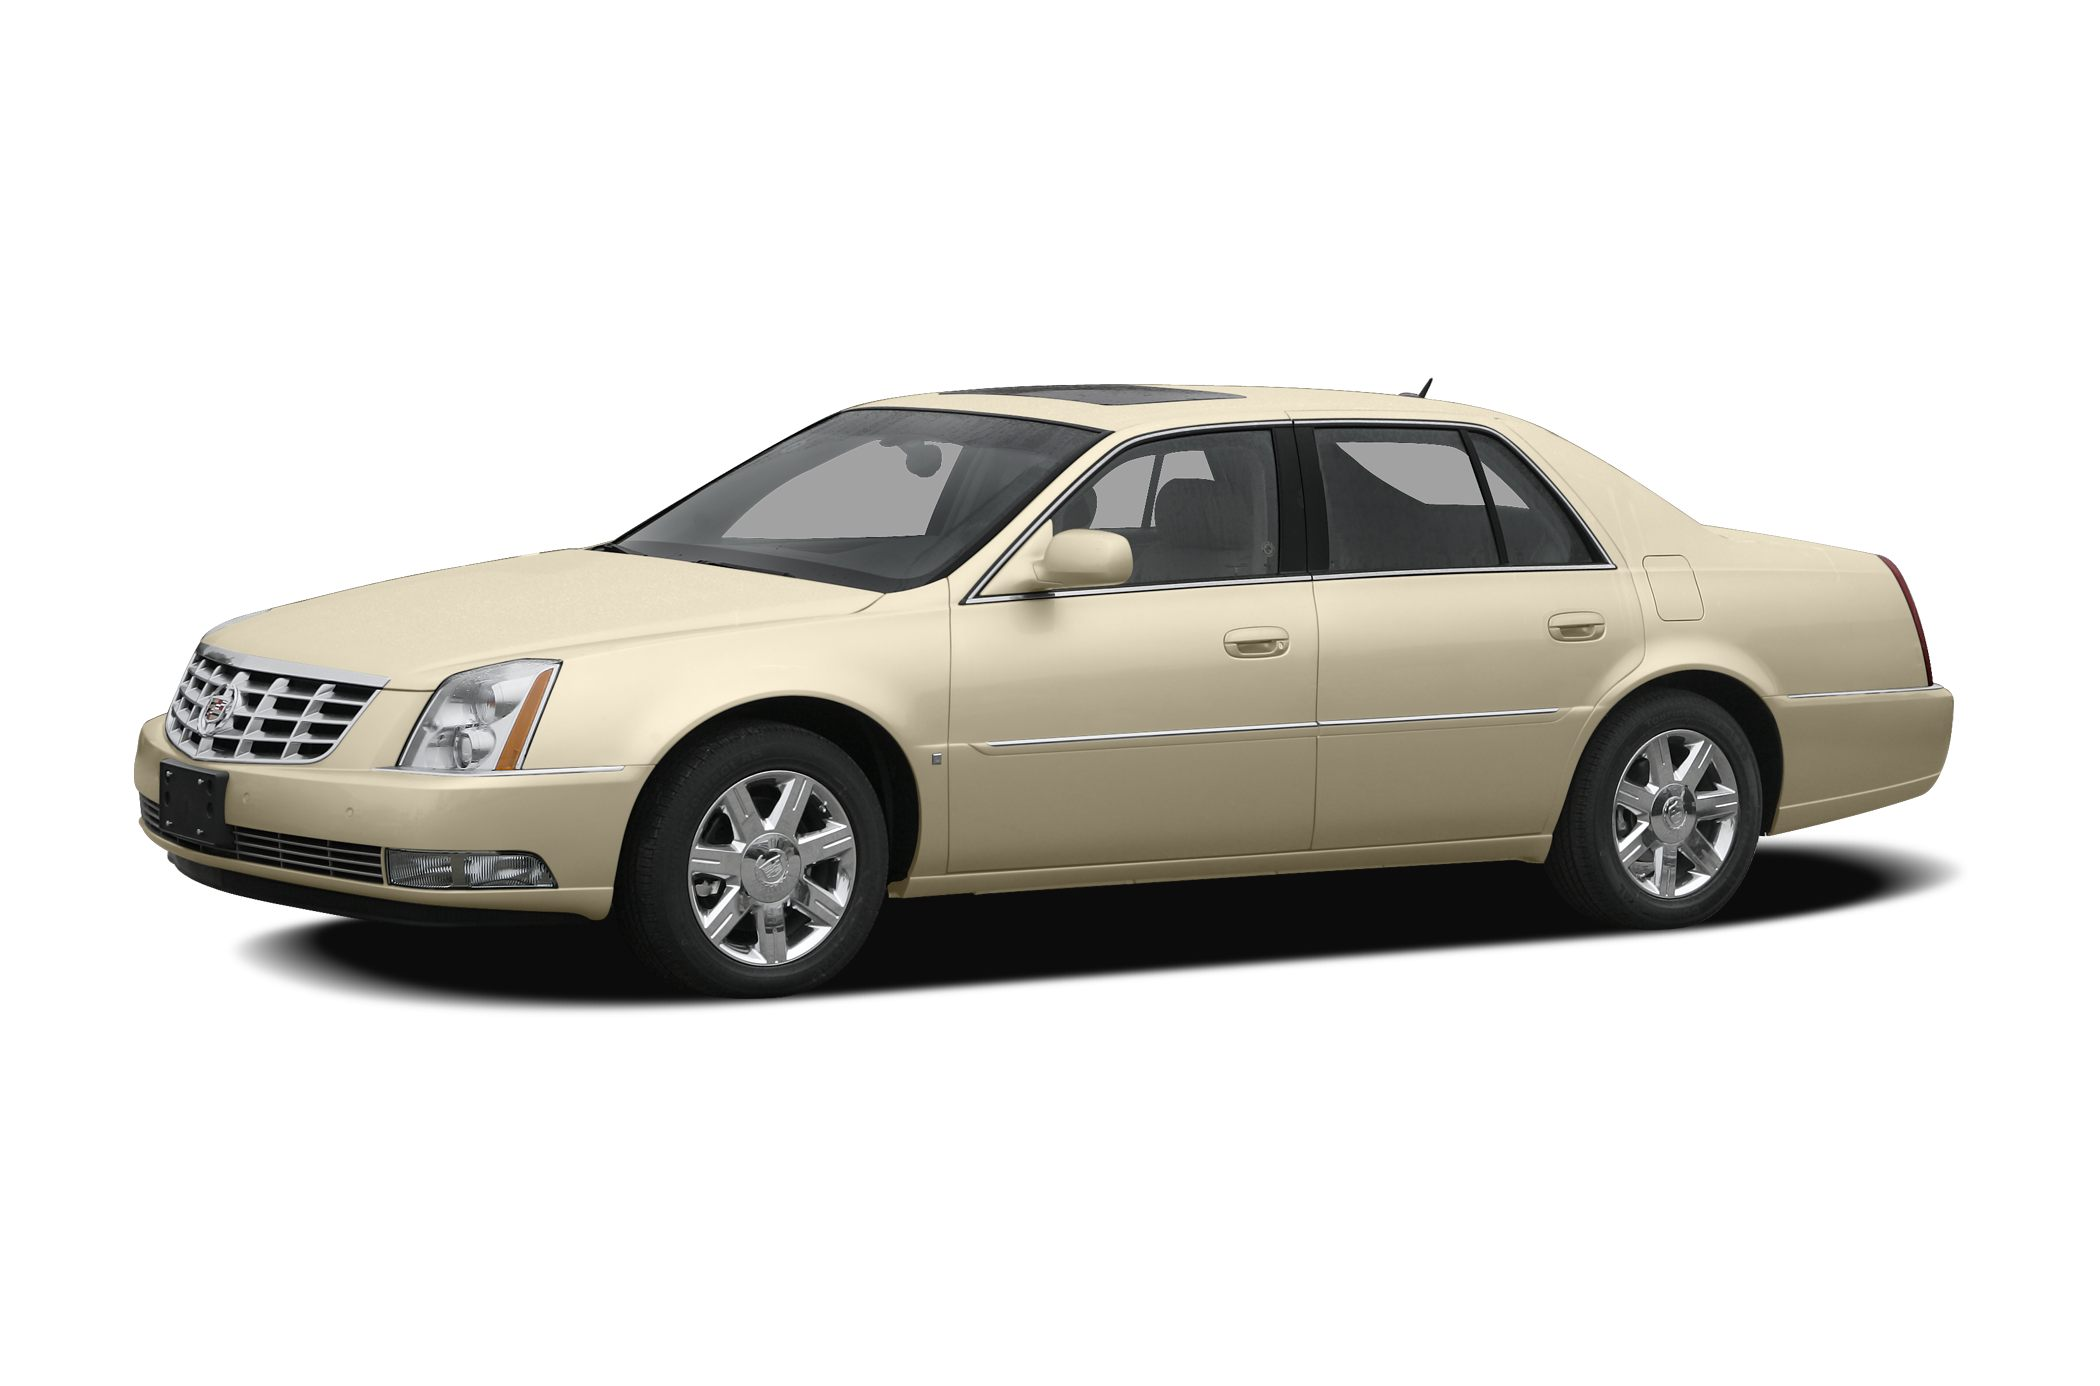 2008 Cadillac DTS  THIS IS A MUST SEE CADDI 45 POINT INSPECTION  60 DAY UNLIMITED MILEAGE W